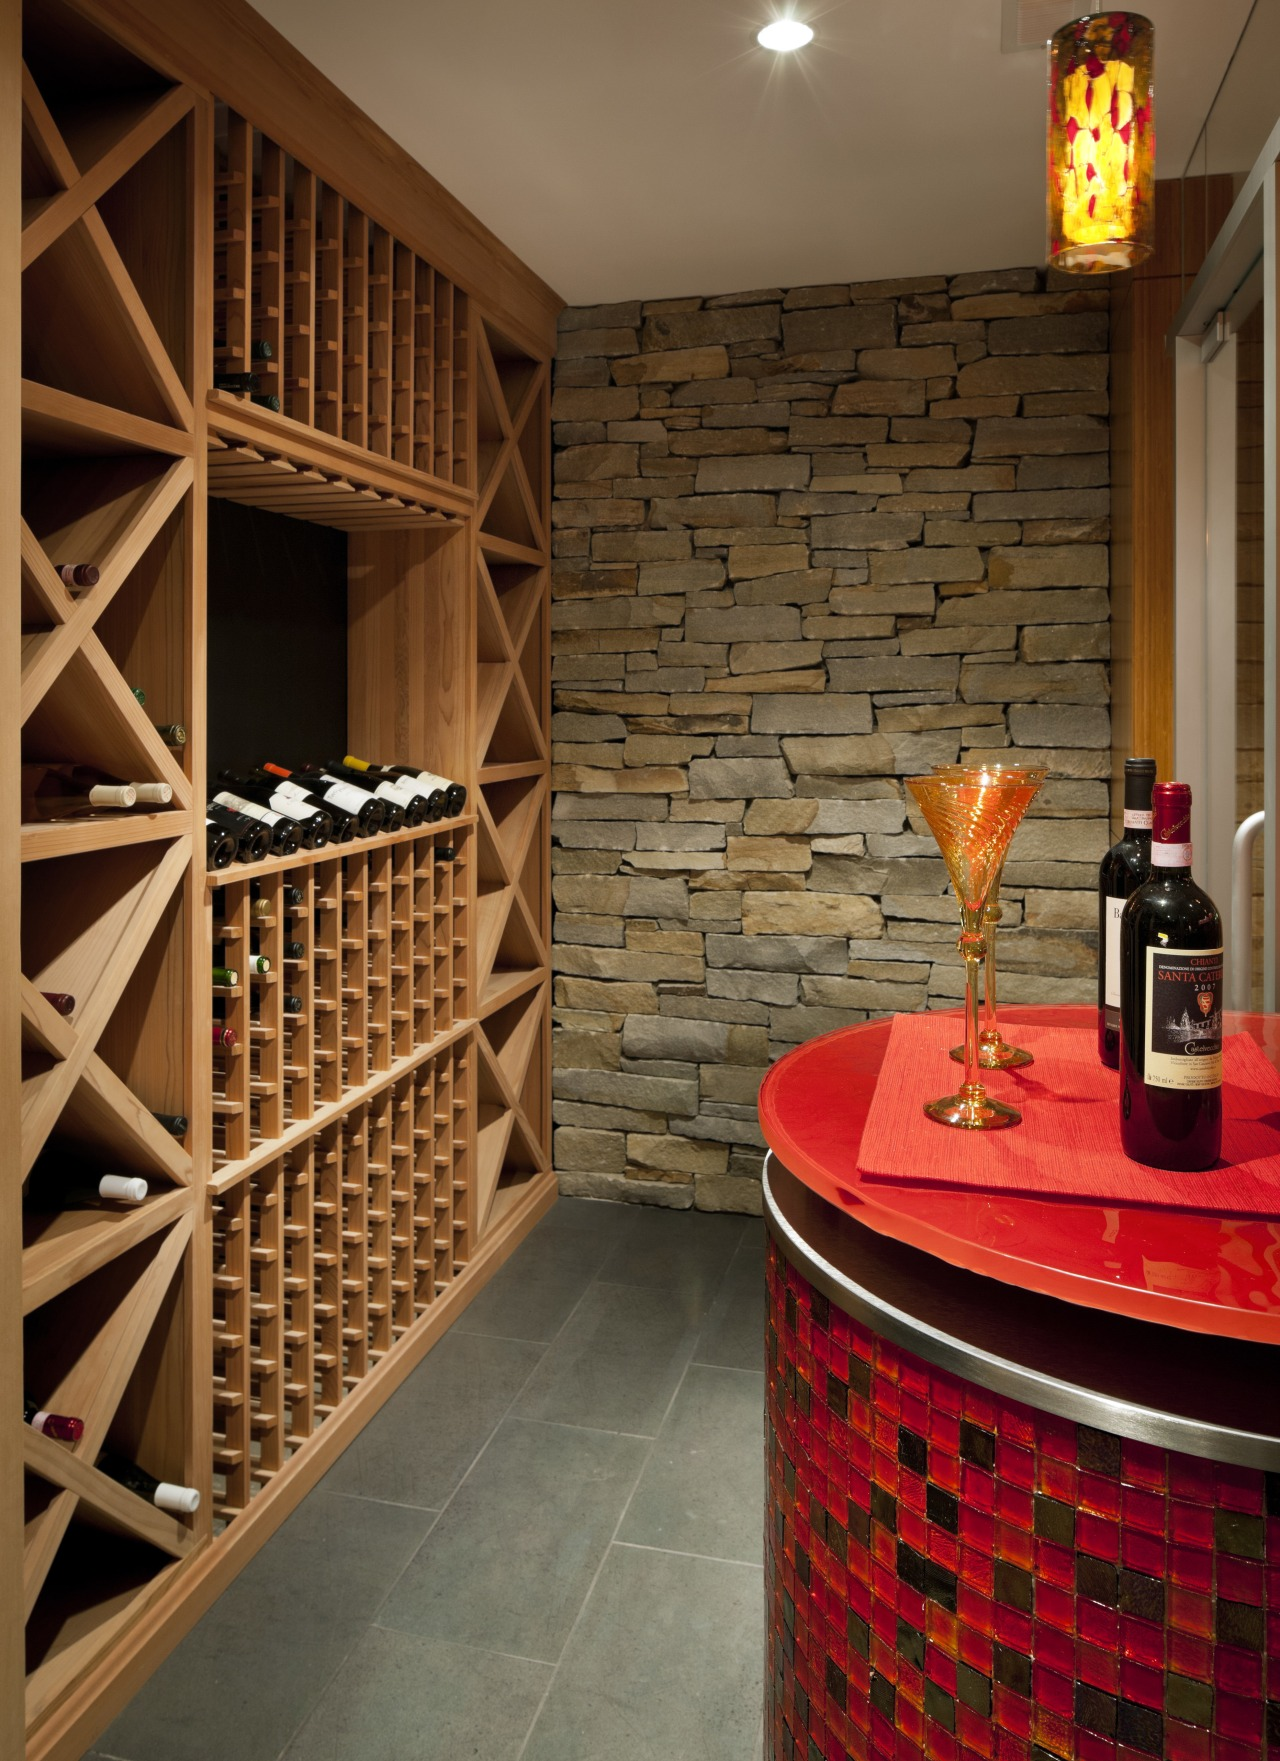 Sleek mosaic tiles in varying tones of red flooring, interior design, liquor store, room, wall, wine cellar, winery, wood, brown, red